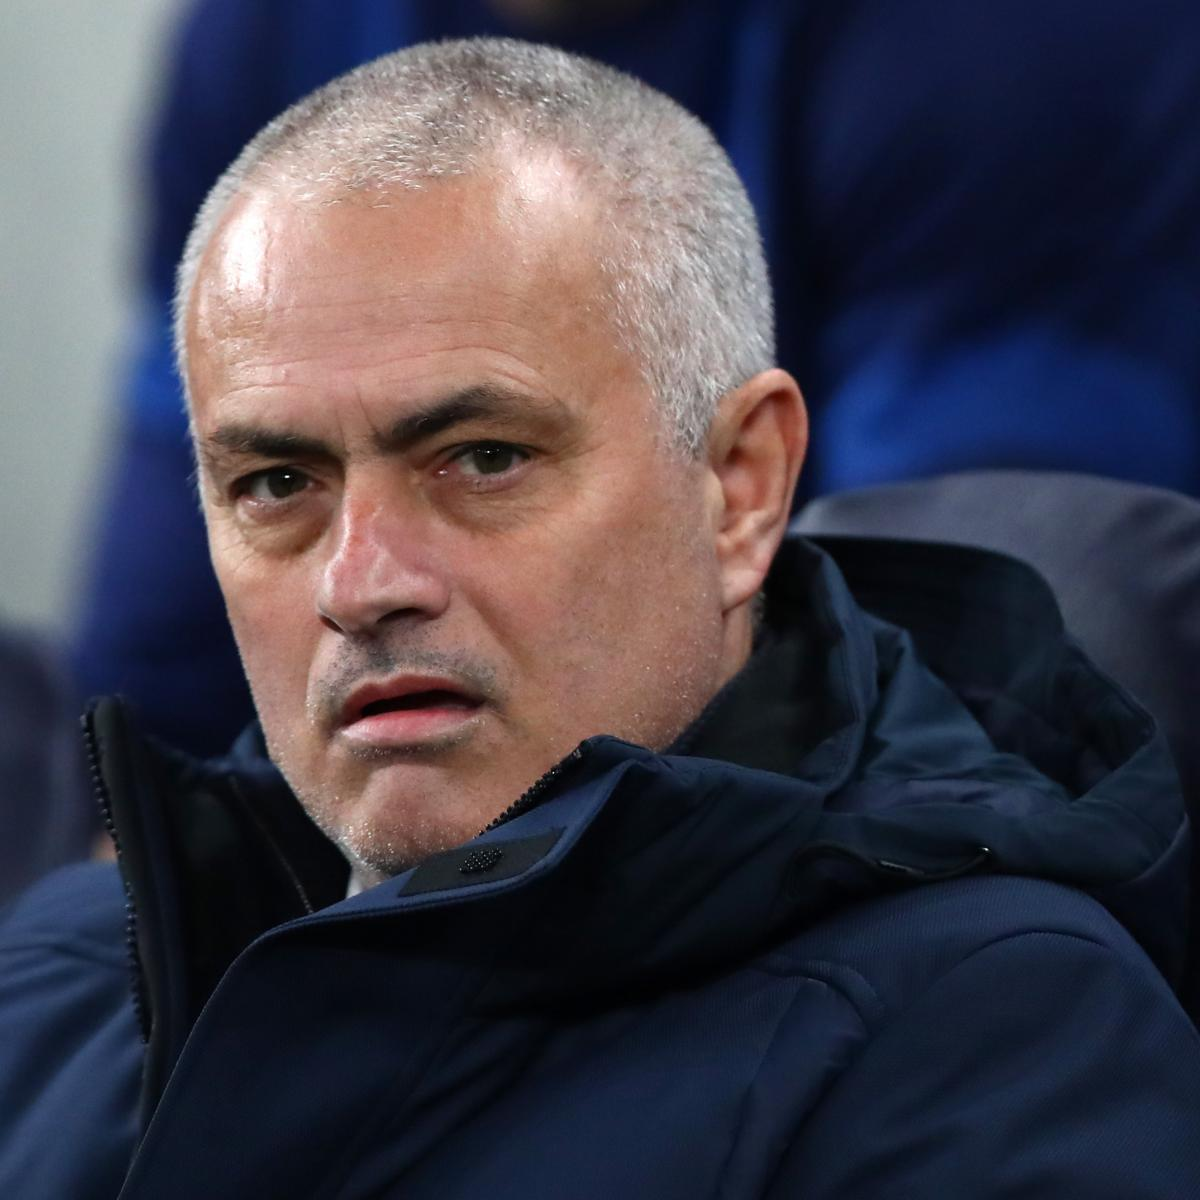 Jose Mourinho Says Tottenham Have the Worst Injury Problems in Europe